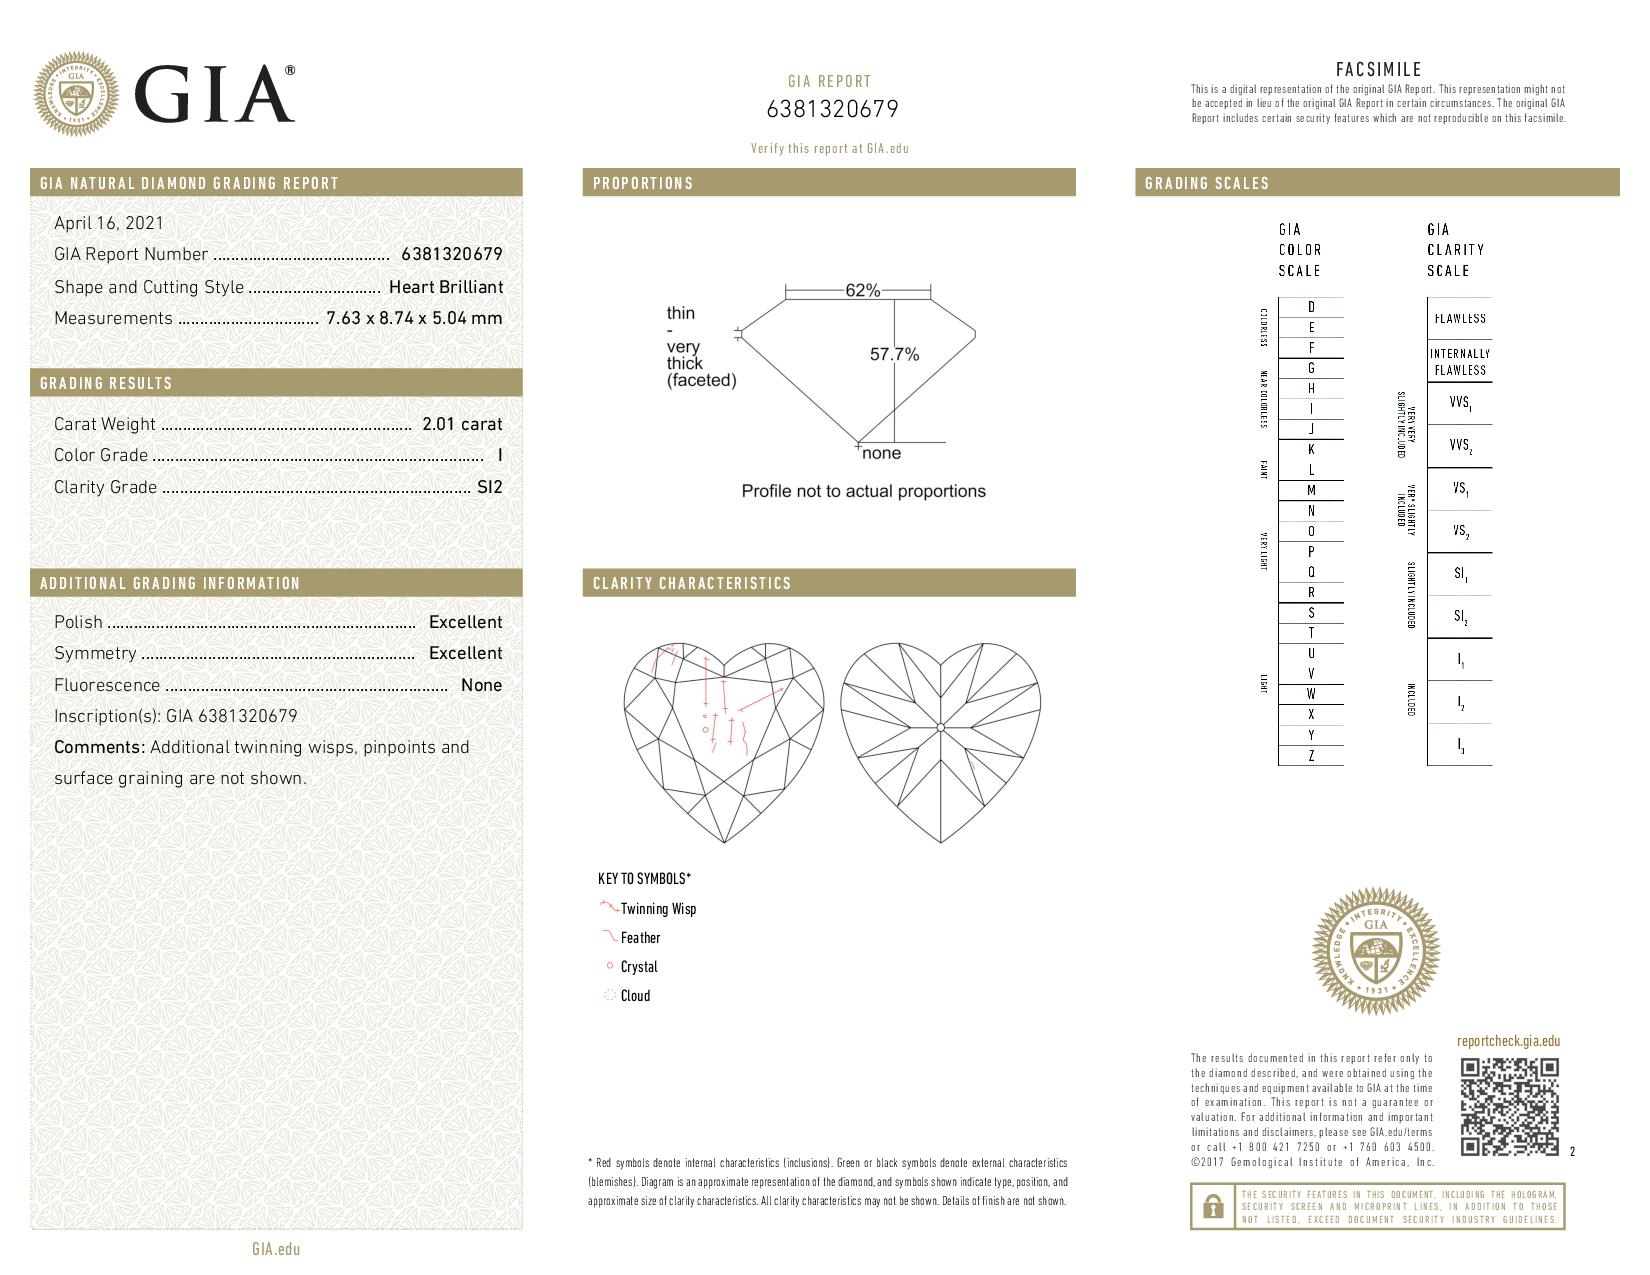 This is a 2.01 carat heart shape, I color, SI2 clarity natural diamond accompanied by a GIA grading report.